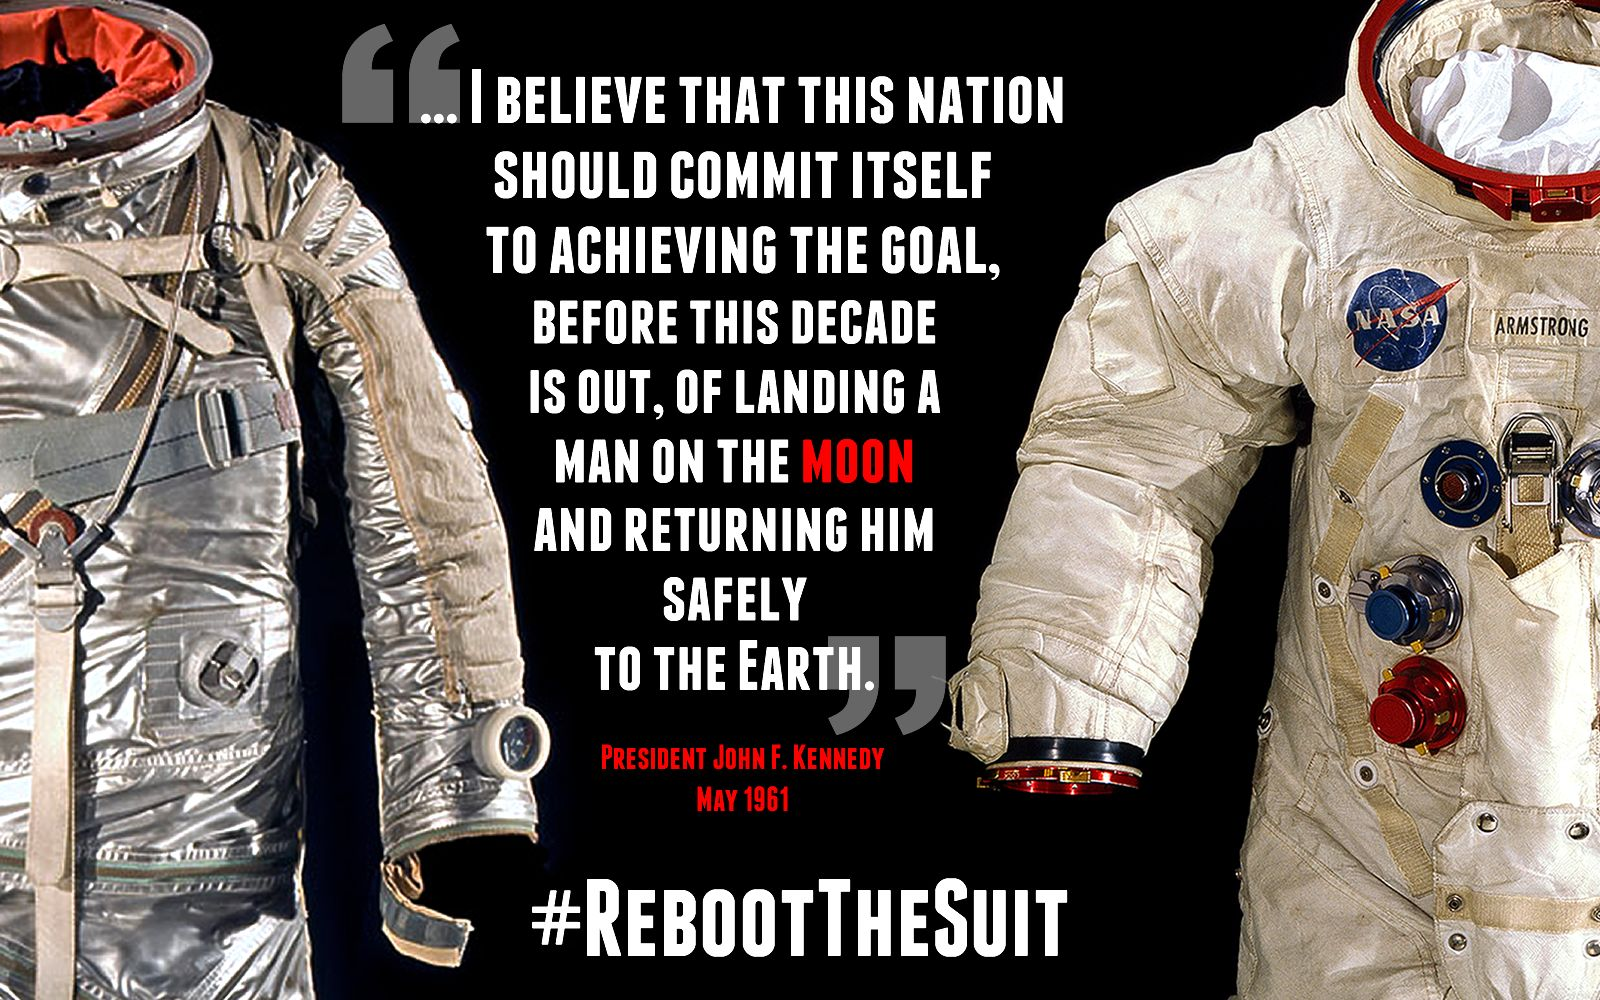 Two weeks ago, we invited you to become part of our mission to conserve, digitize, and display Neil Armstrong's Apollo 11 spacesuit. Thanks to your amazing support, we expanded the mission to include Alan Shepard's Mercury suit, and we're halfway to that goal! Haven't backed #RebootTheSuit yet? Today only, Bruce R. McCaw and Family will match your pledge up to a total of $10,000.